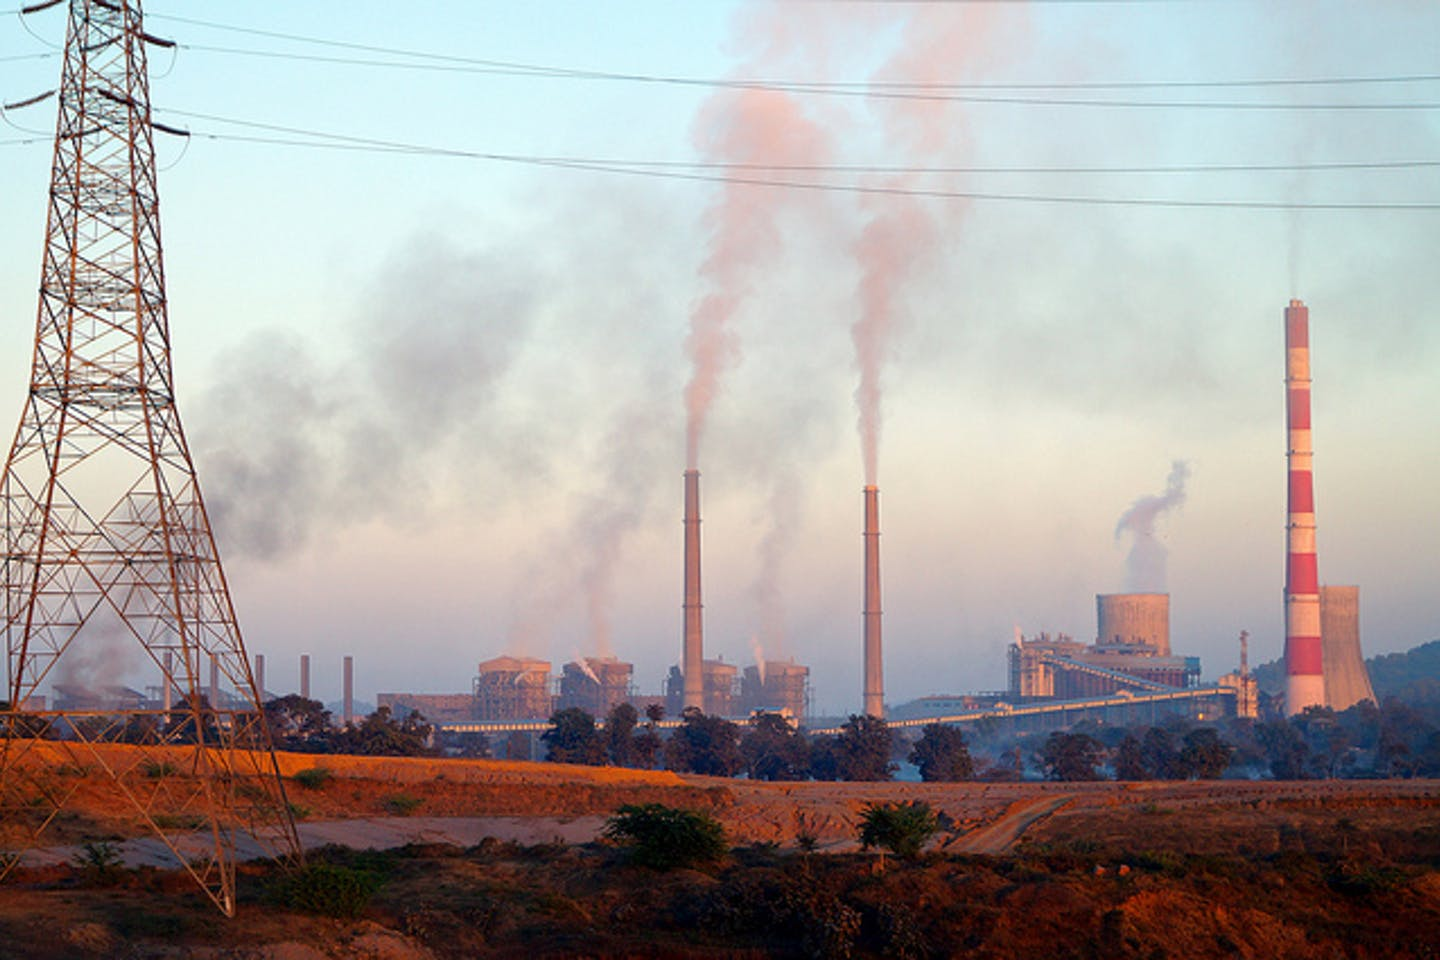 thermal power plant in India